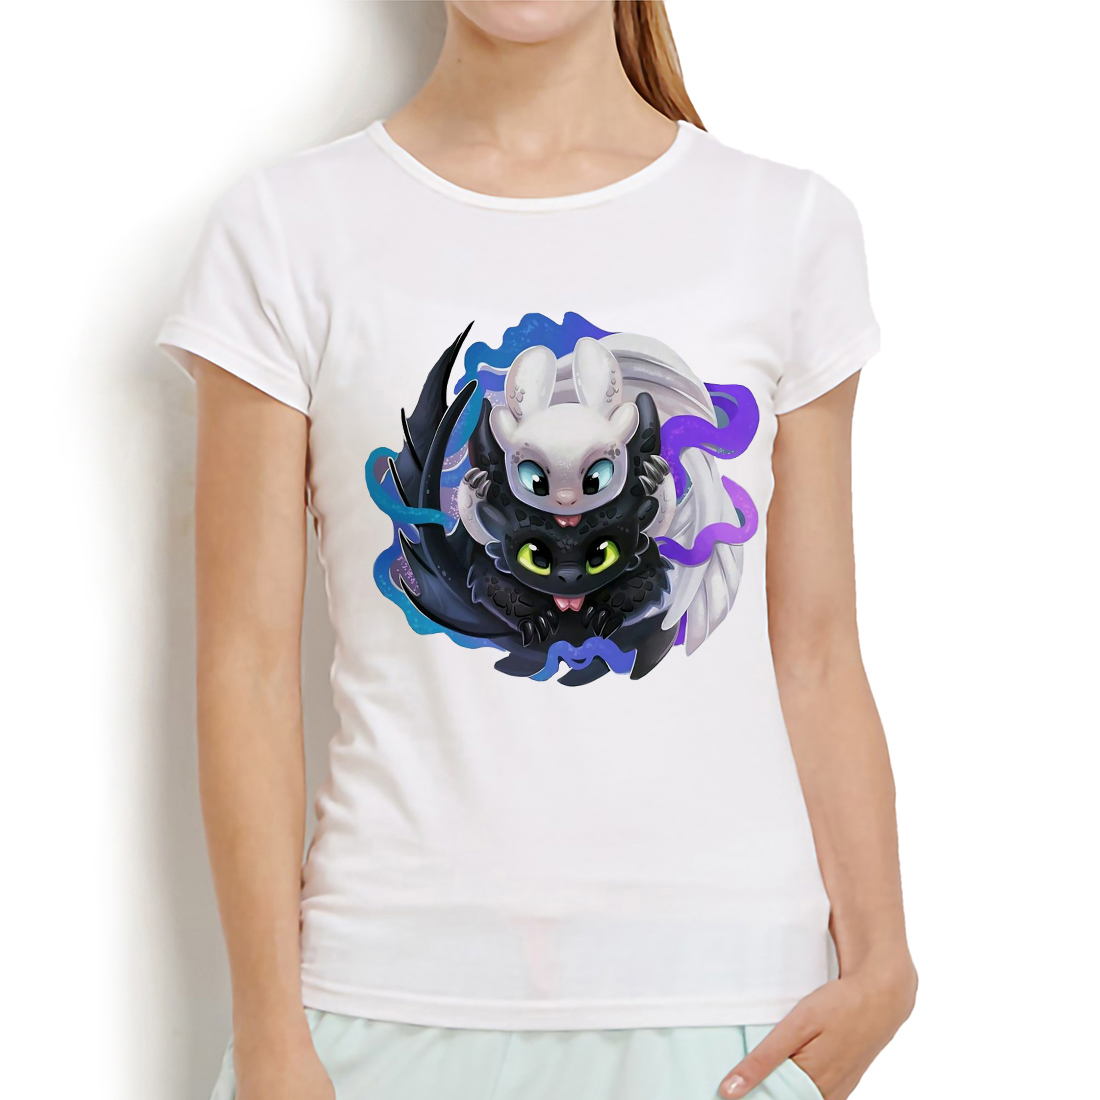 How To Train Your Dragon Funny Anime Tshirt Women 2019 Summer New White Casual T Shirt Toothless And Light Fury T-shirts Femme